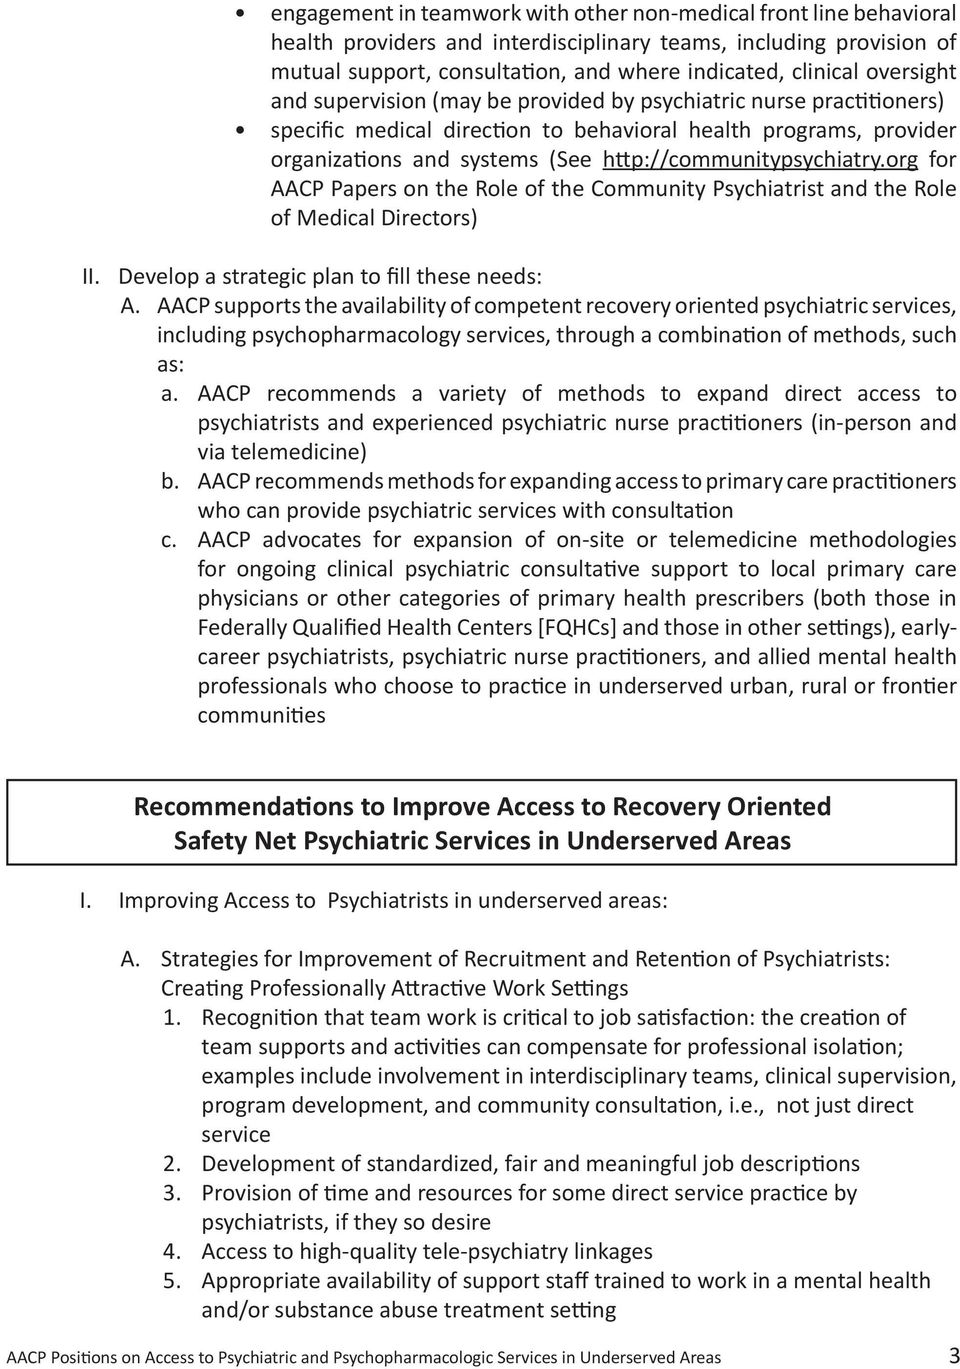 http://communitypsychiatry.org for AACP Papers on the Role of the Community Psychiatrist and the Role of Medical Directors) II. Develop a strategic plan to fill these needs: A.